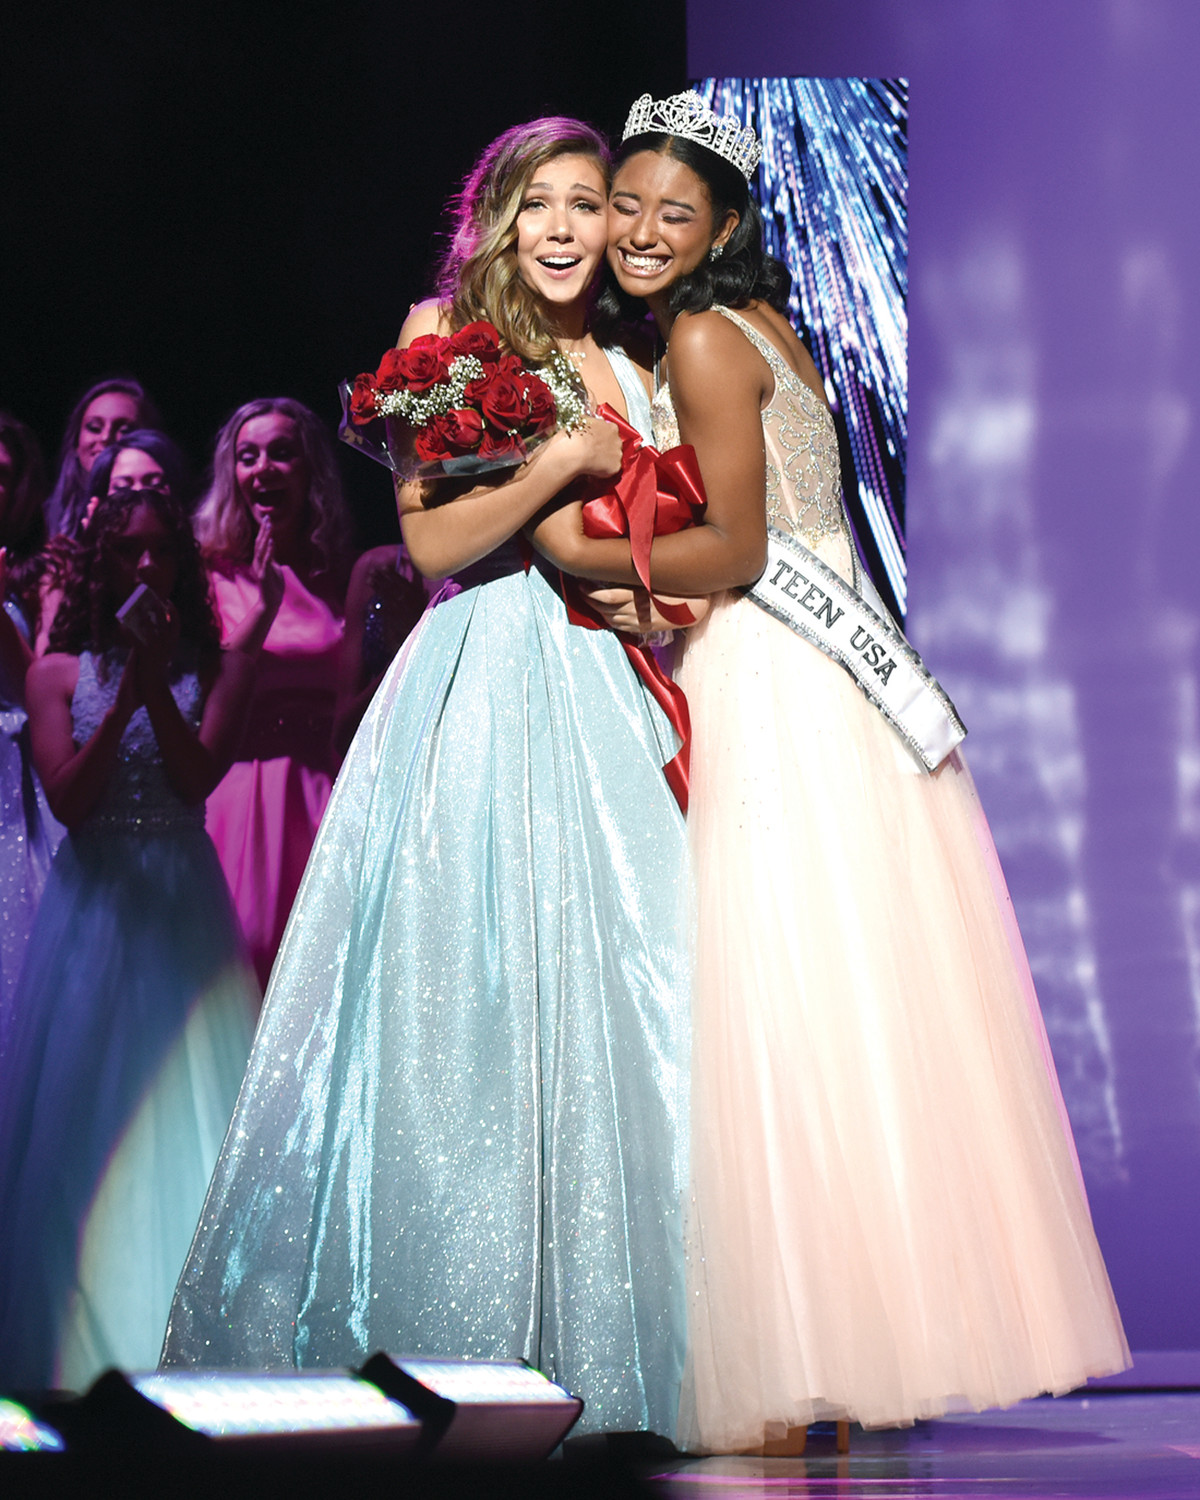 LEFT SPEECHLESS: Olivia Volpe, a senior at Cranston West and the newest Miss Teen Rhode Island, was crowned on Sunday afternoon by the previous Miss Teen RI, Aliyah Moore.